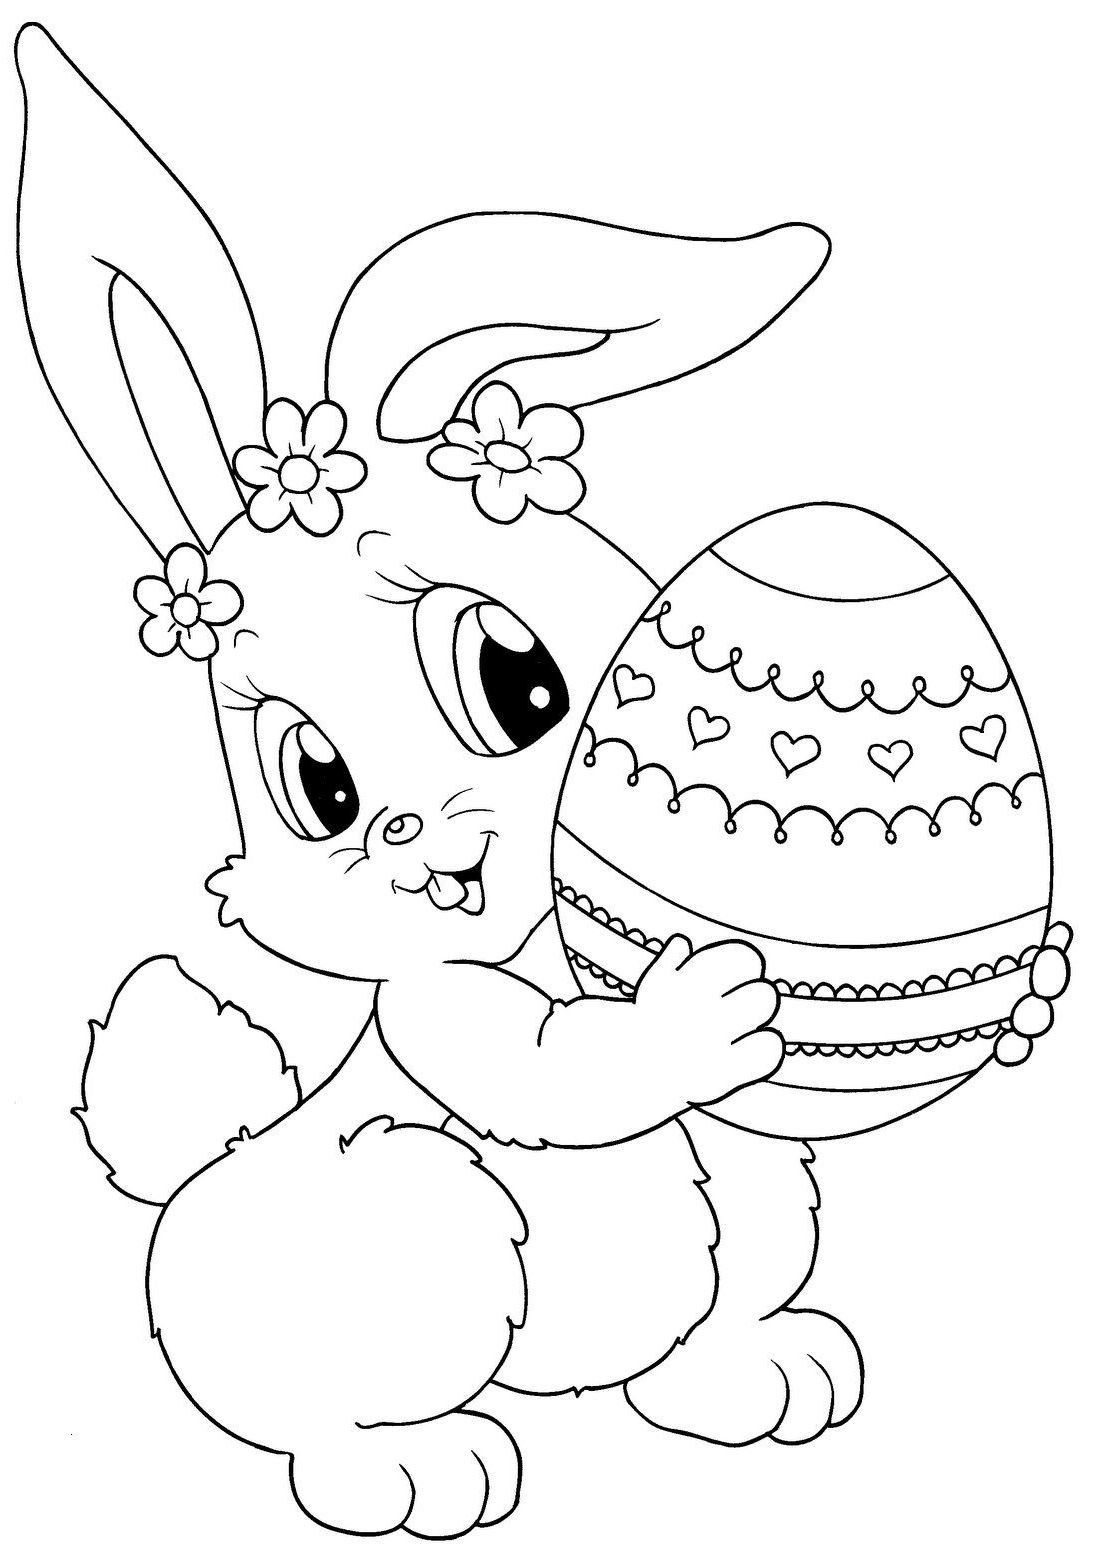 Cute Coloring Pages To Print Coloring Pages Coloring Pages